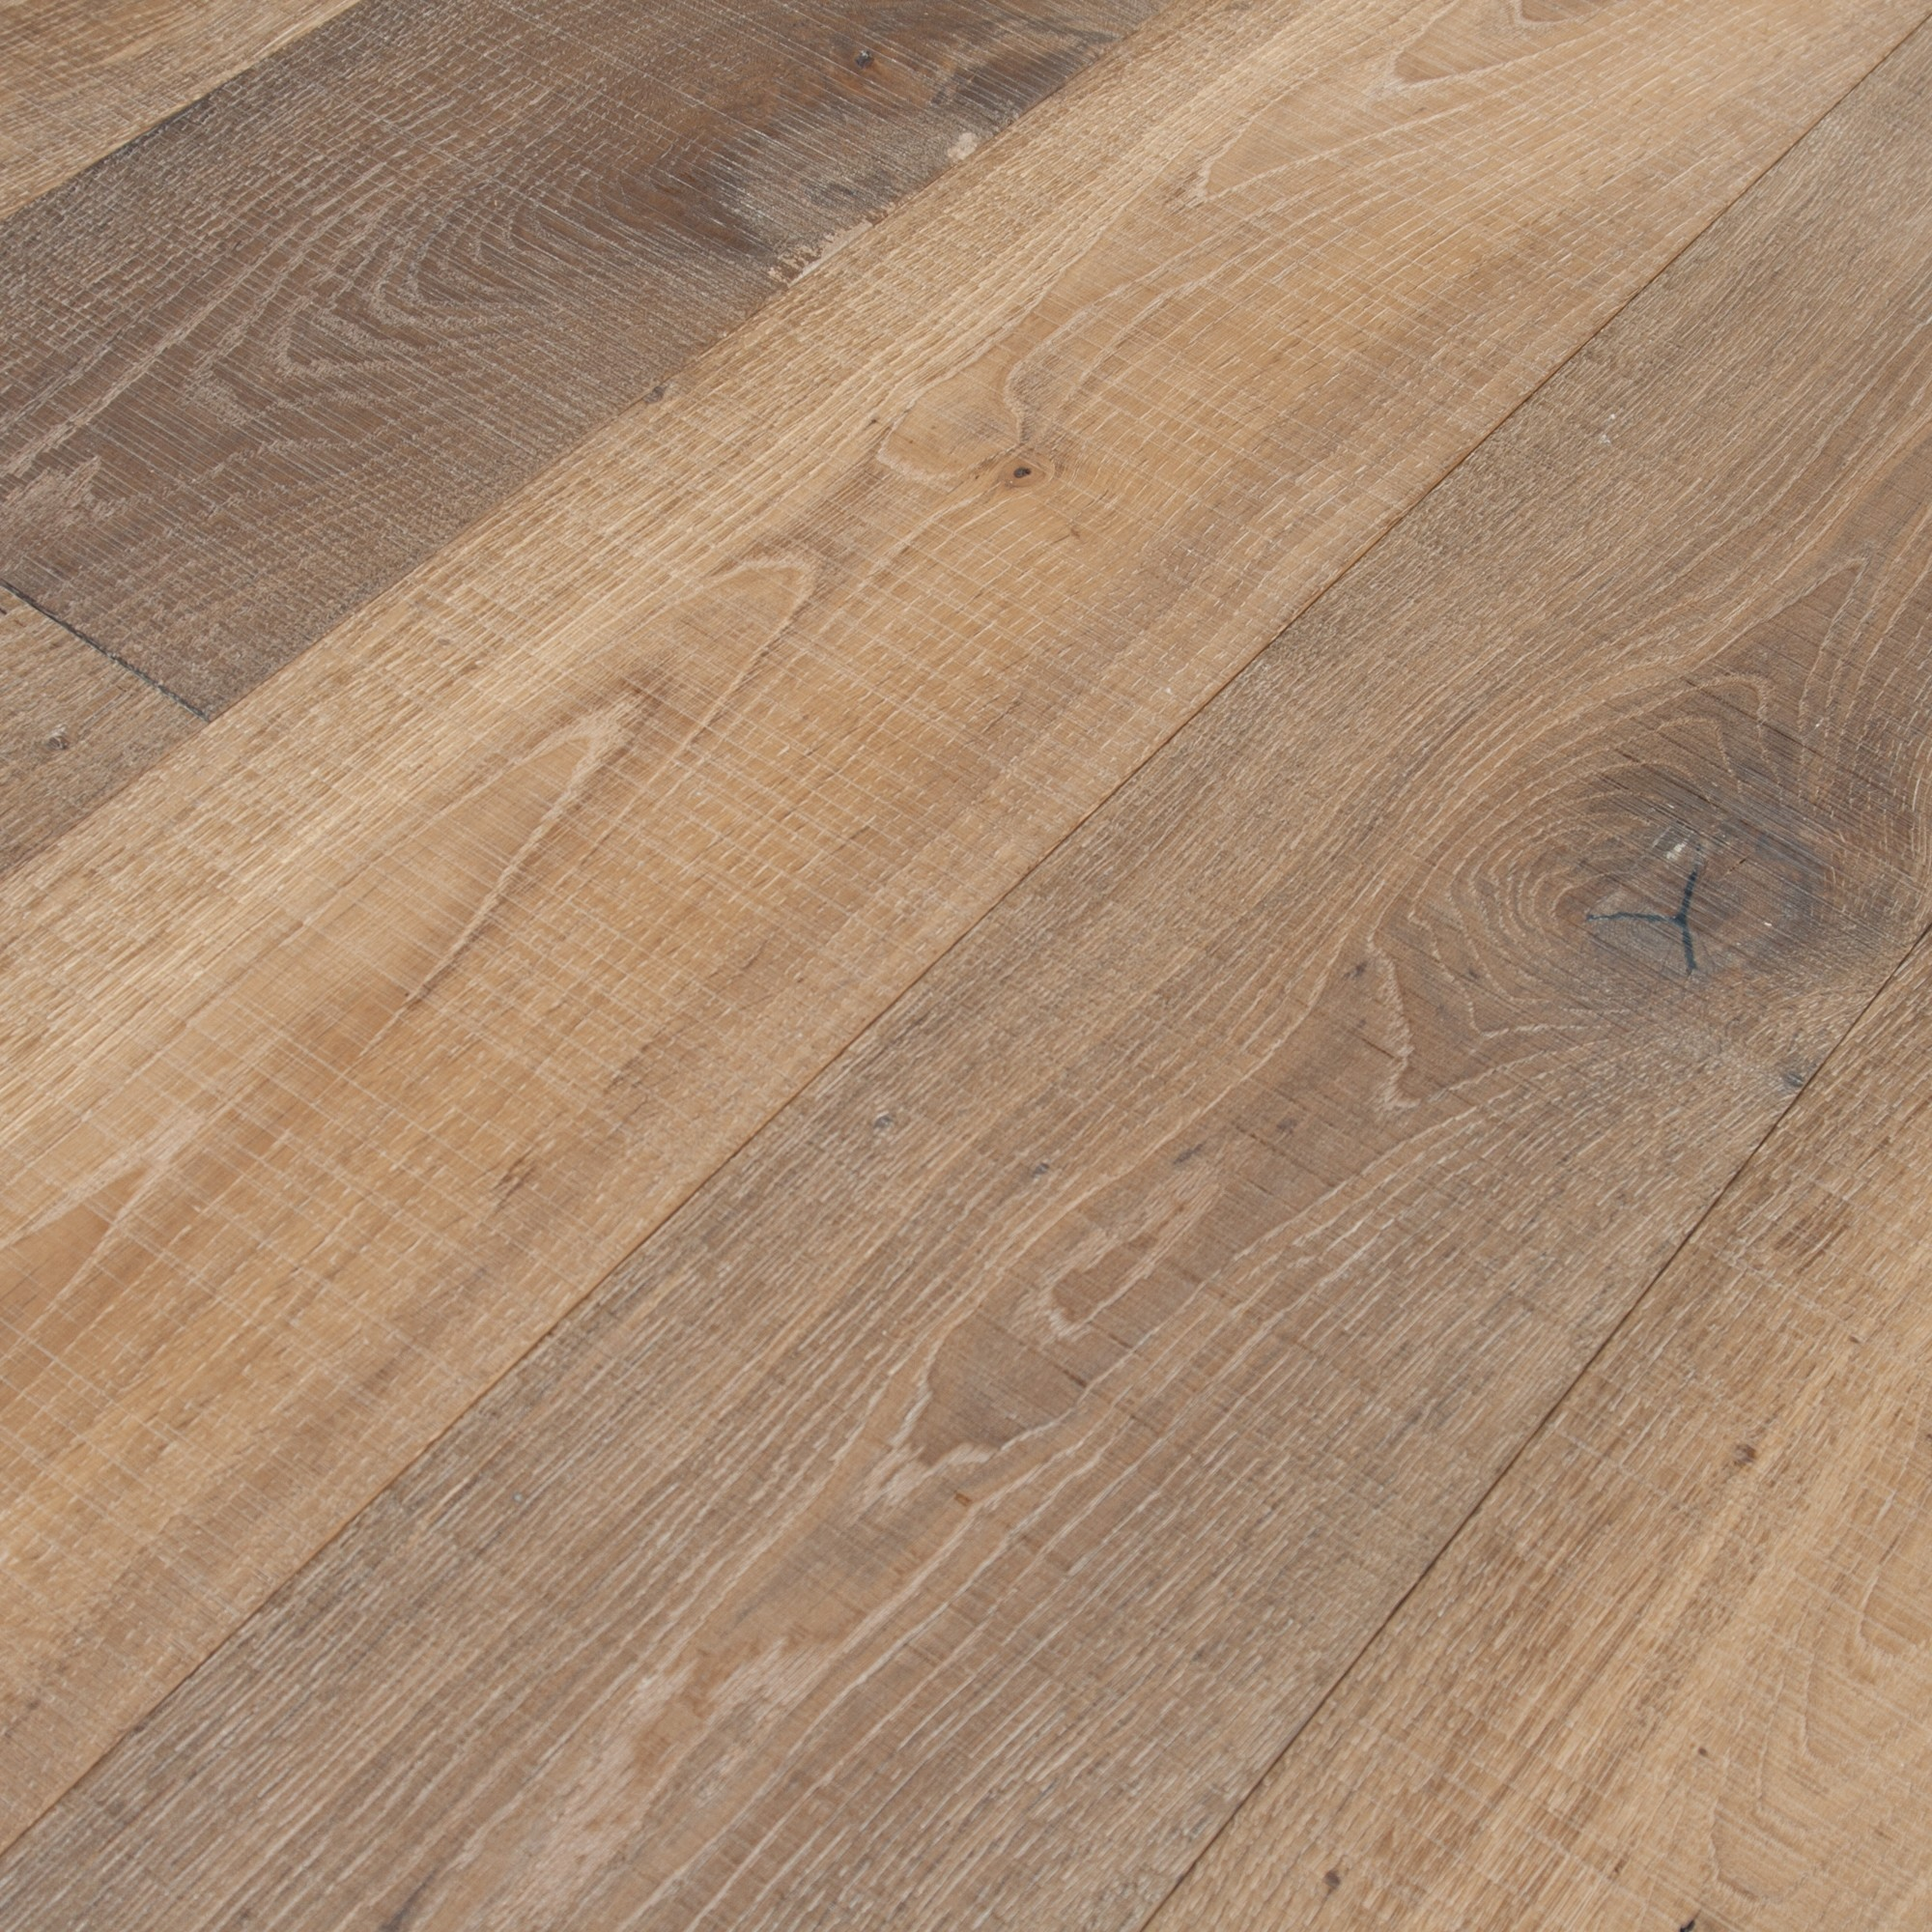 Prefinished hardwood flooring thickness 100 prefinished for Floor 78 100 floors